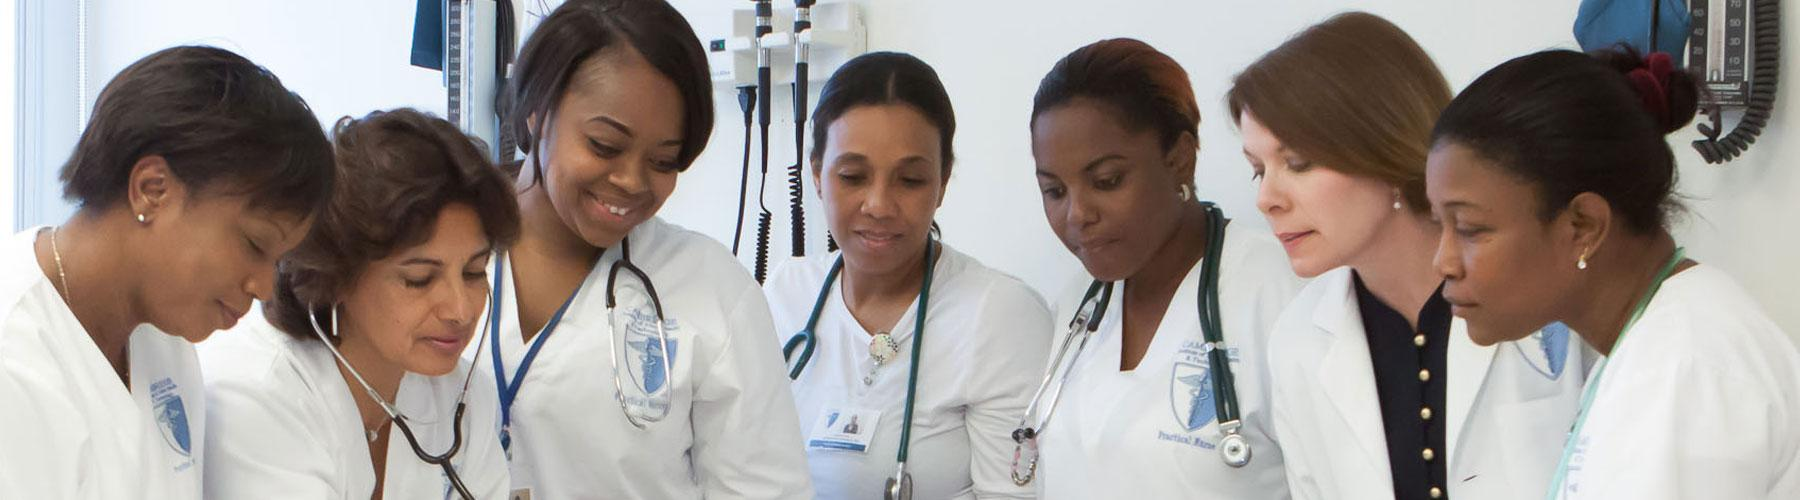 Admissions for Cambridge Institute of Allied Health and Technology